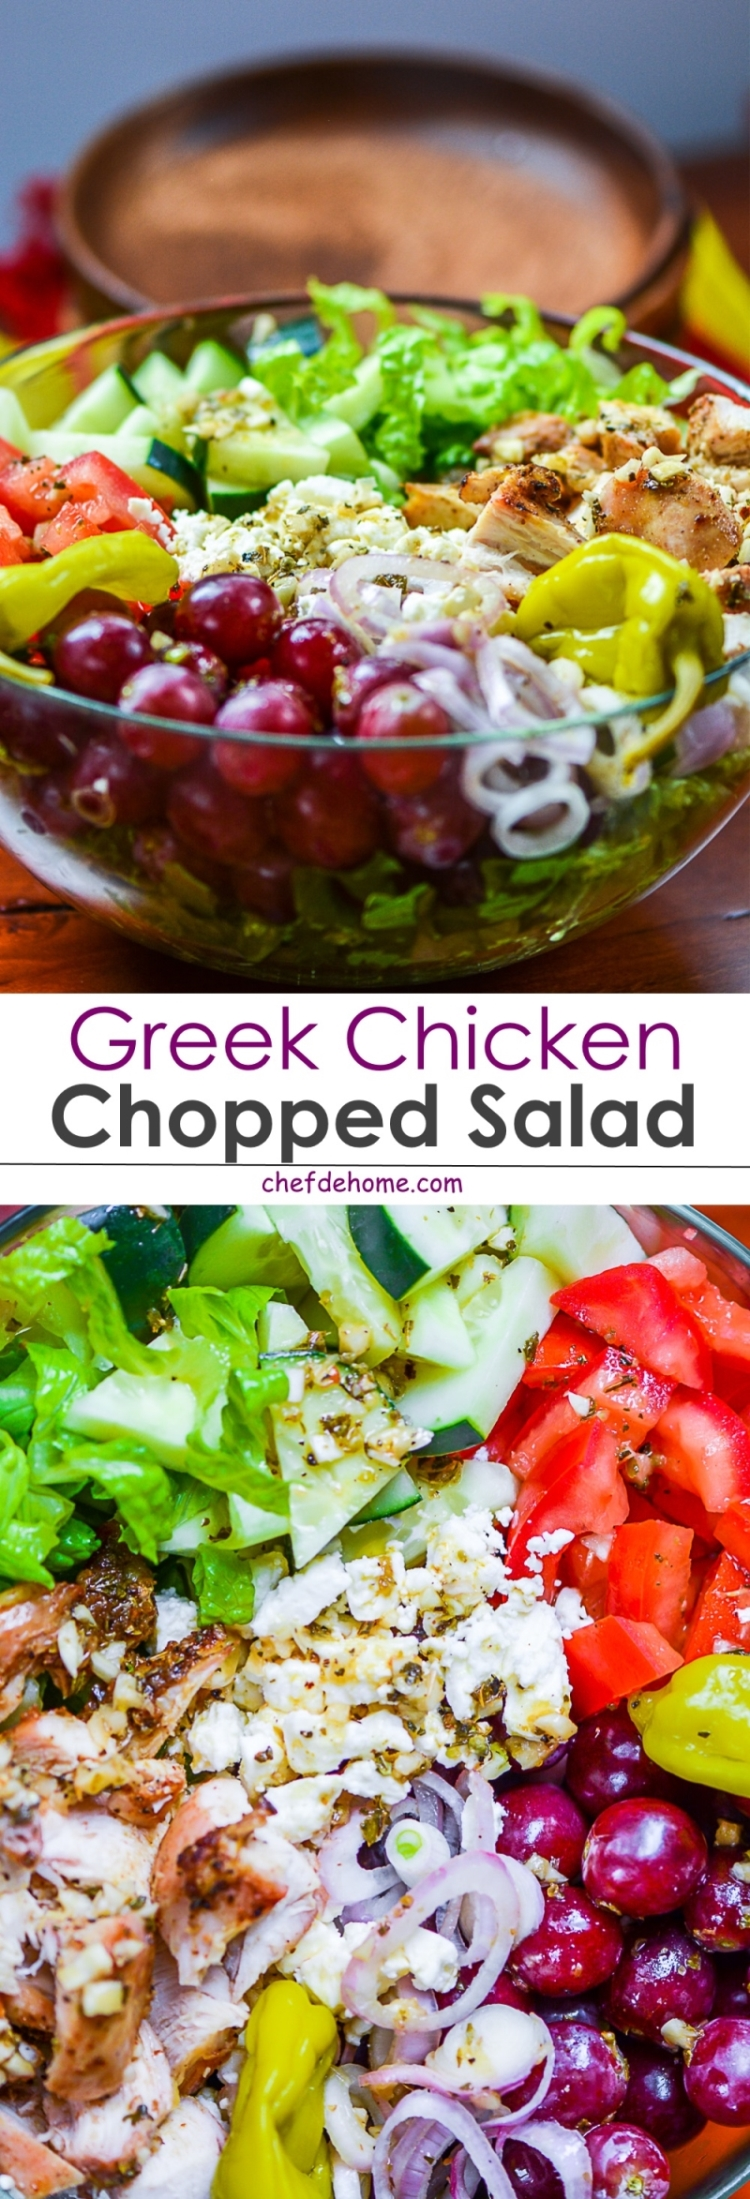 Grrek Chicken Chopped Salad | chefdehome.com